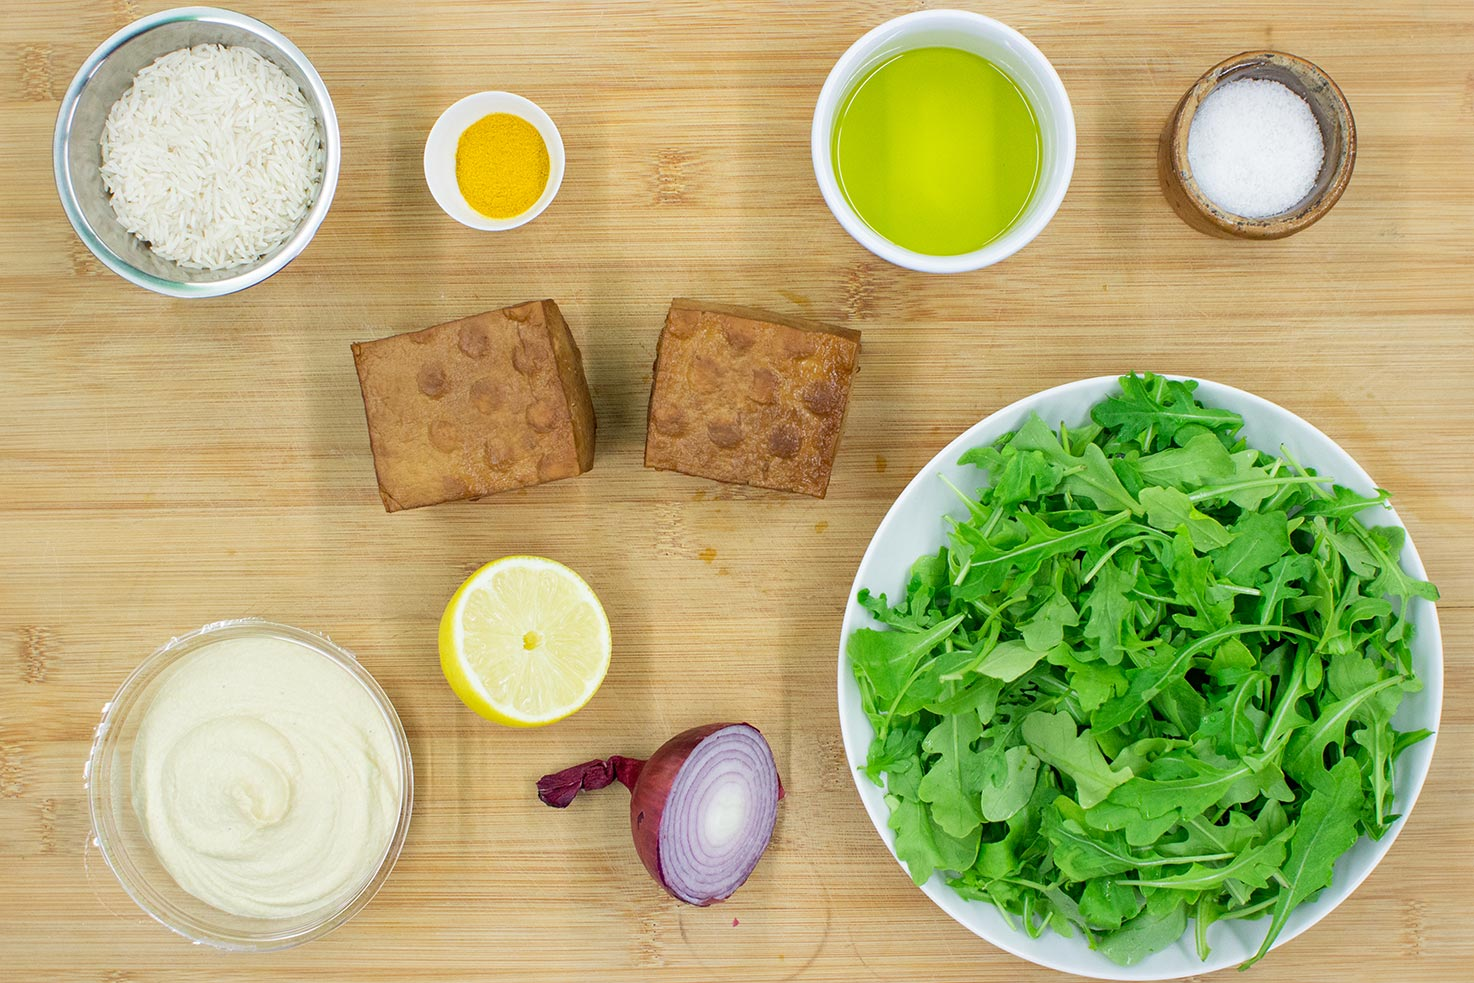 The meal ingredients are on the chopping board - rice, tofu, lamb's lettuce, turmeric, hummus, onion #lemon juice #salt | hurrythefoodup.com